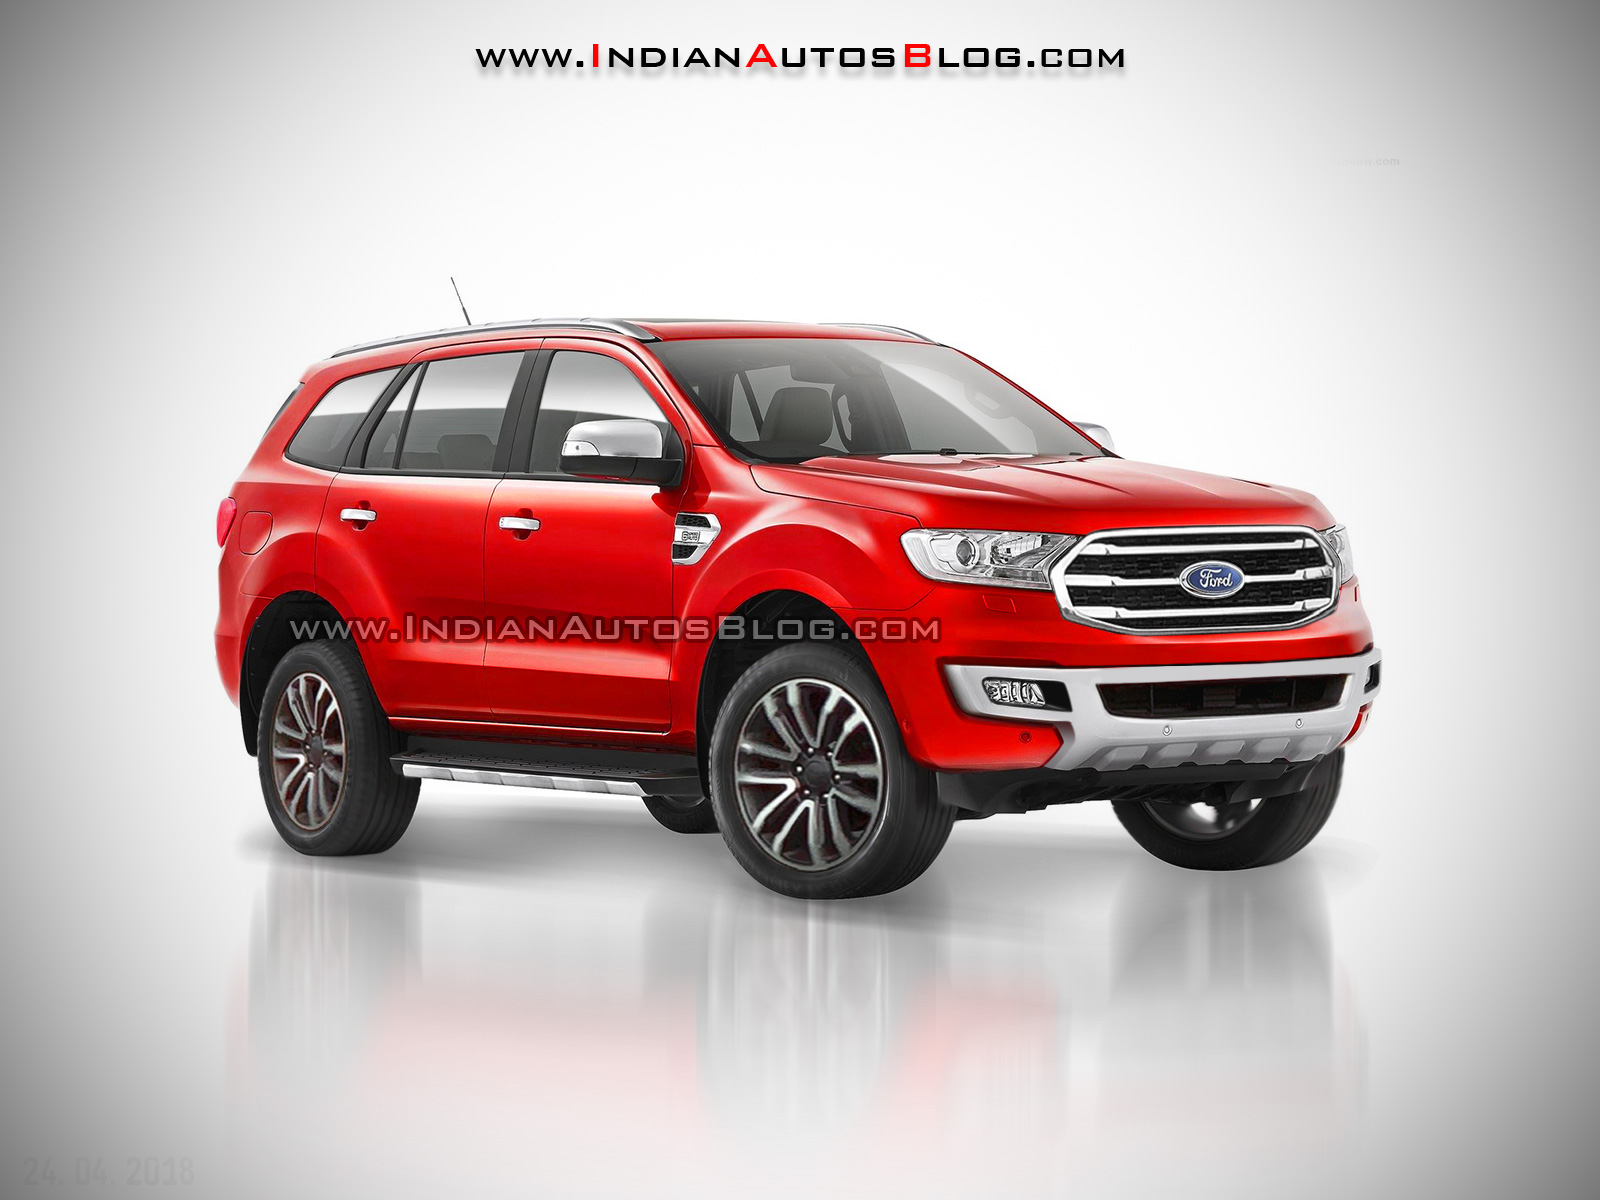 2018 Ford Endeavour (2018 Ford Everest) IAB rendering